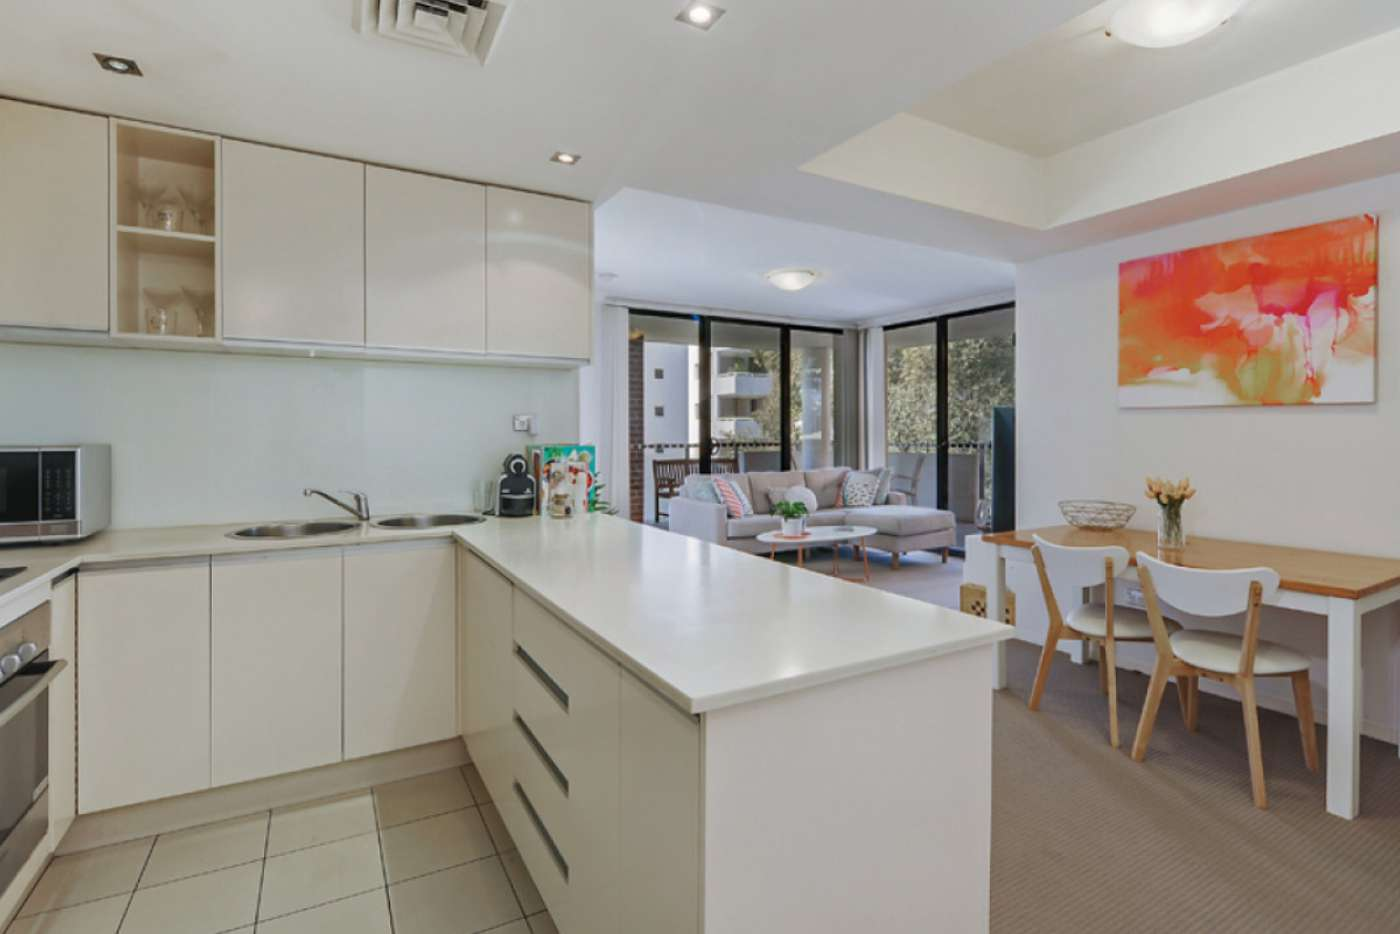 Fifth view of Homely apartment listing, 403/12-16 Romsey Street, Waitara NSW 2077